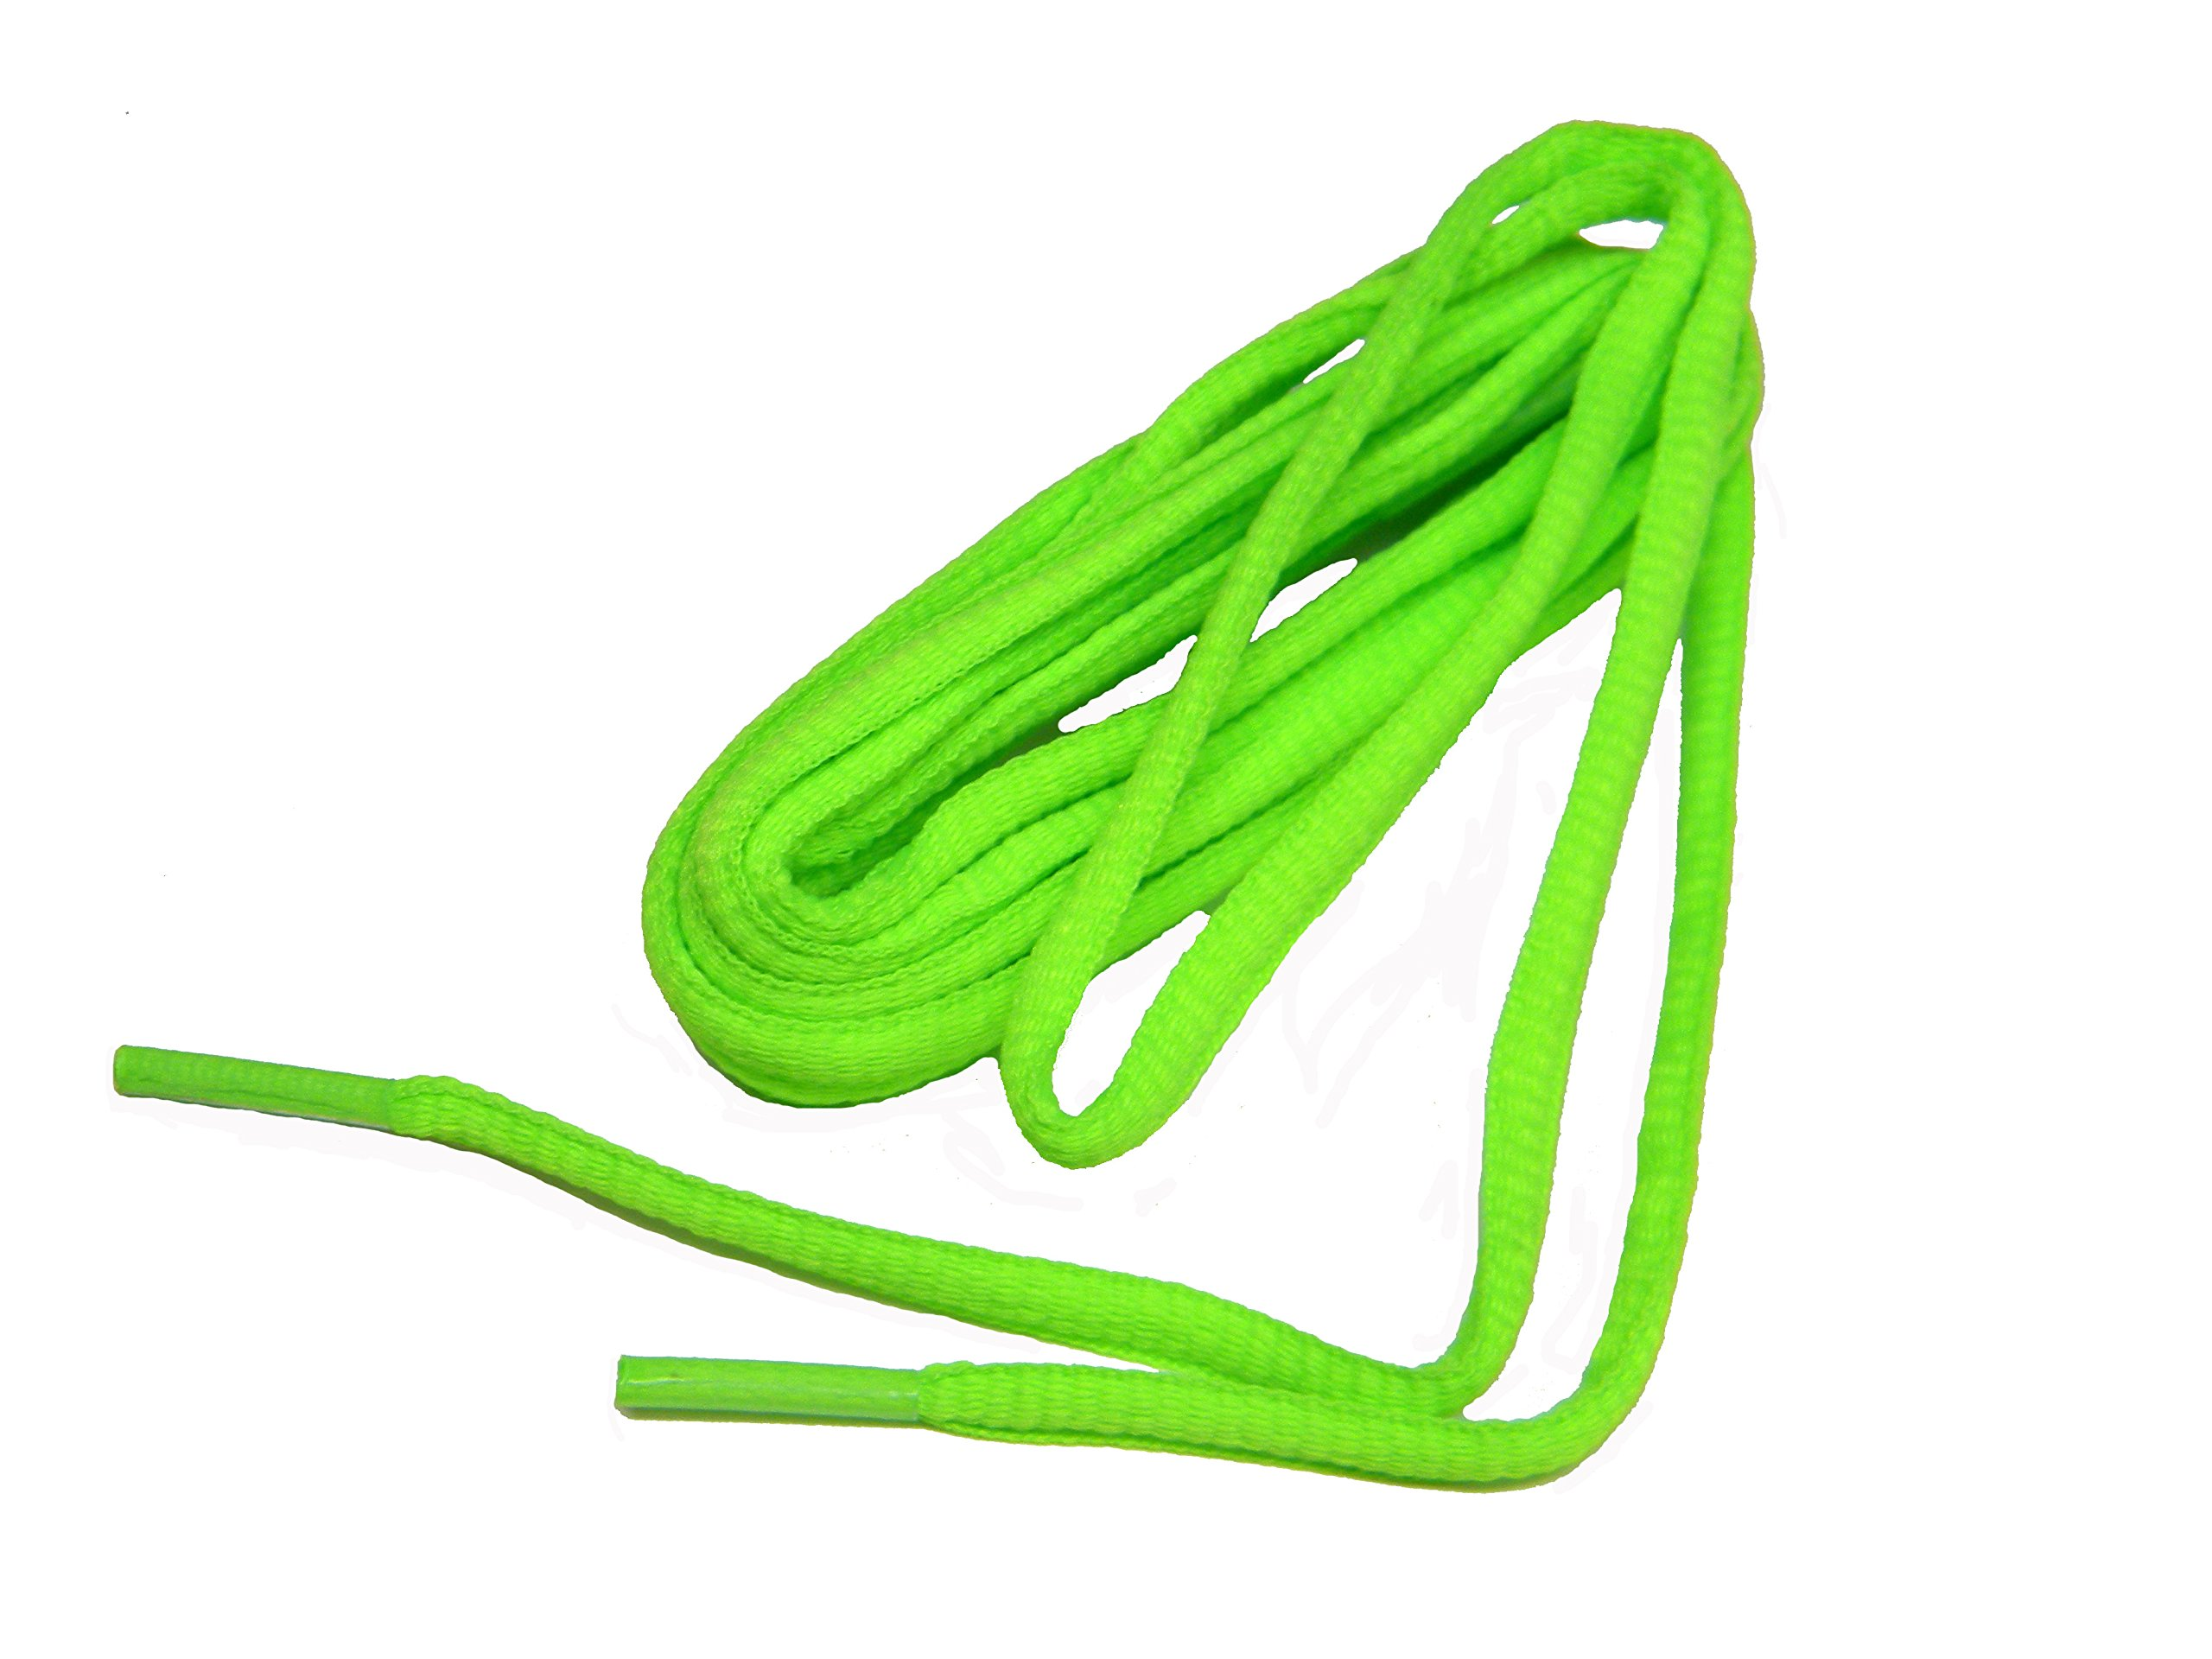 24 Pair Pack proATHLETIC(tm) OVAL 6mm Shoelaces Bulk pack TEAMLACES(tm) Support Cancer Awareness! (40 Inch 102 cm, HOT NEON GREEN)